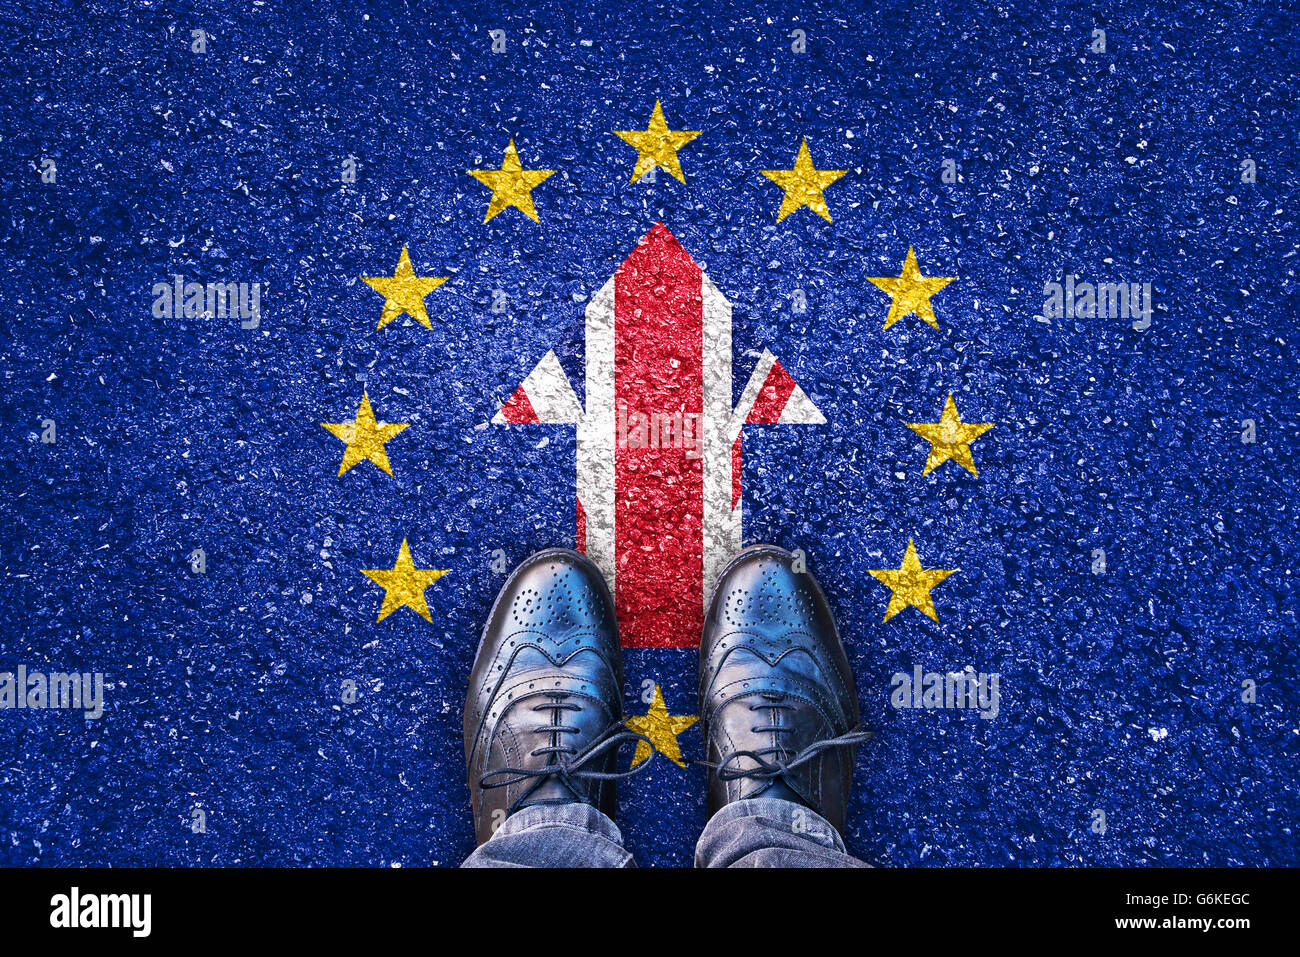 Brexit, flags of the United Kingdom and the European Union on asphalt road with legs - Stock Image